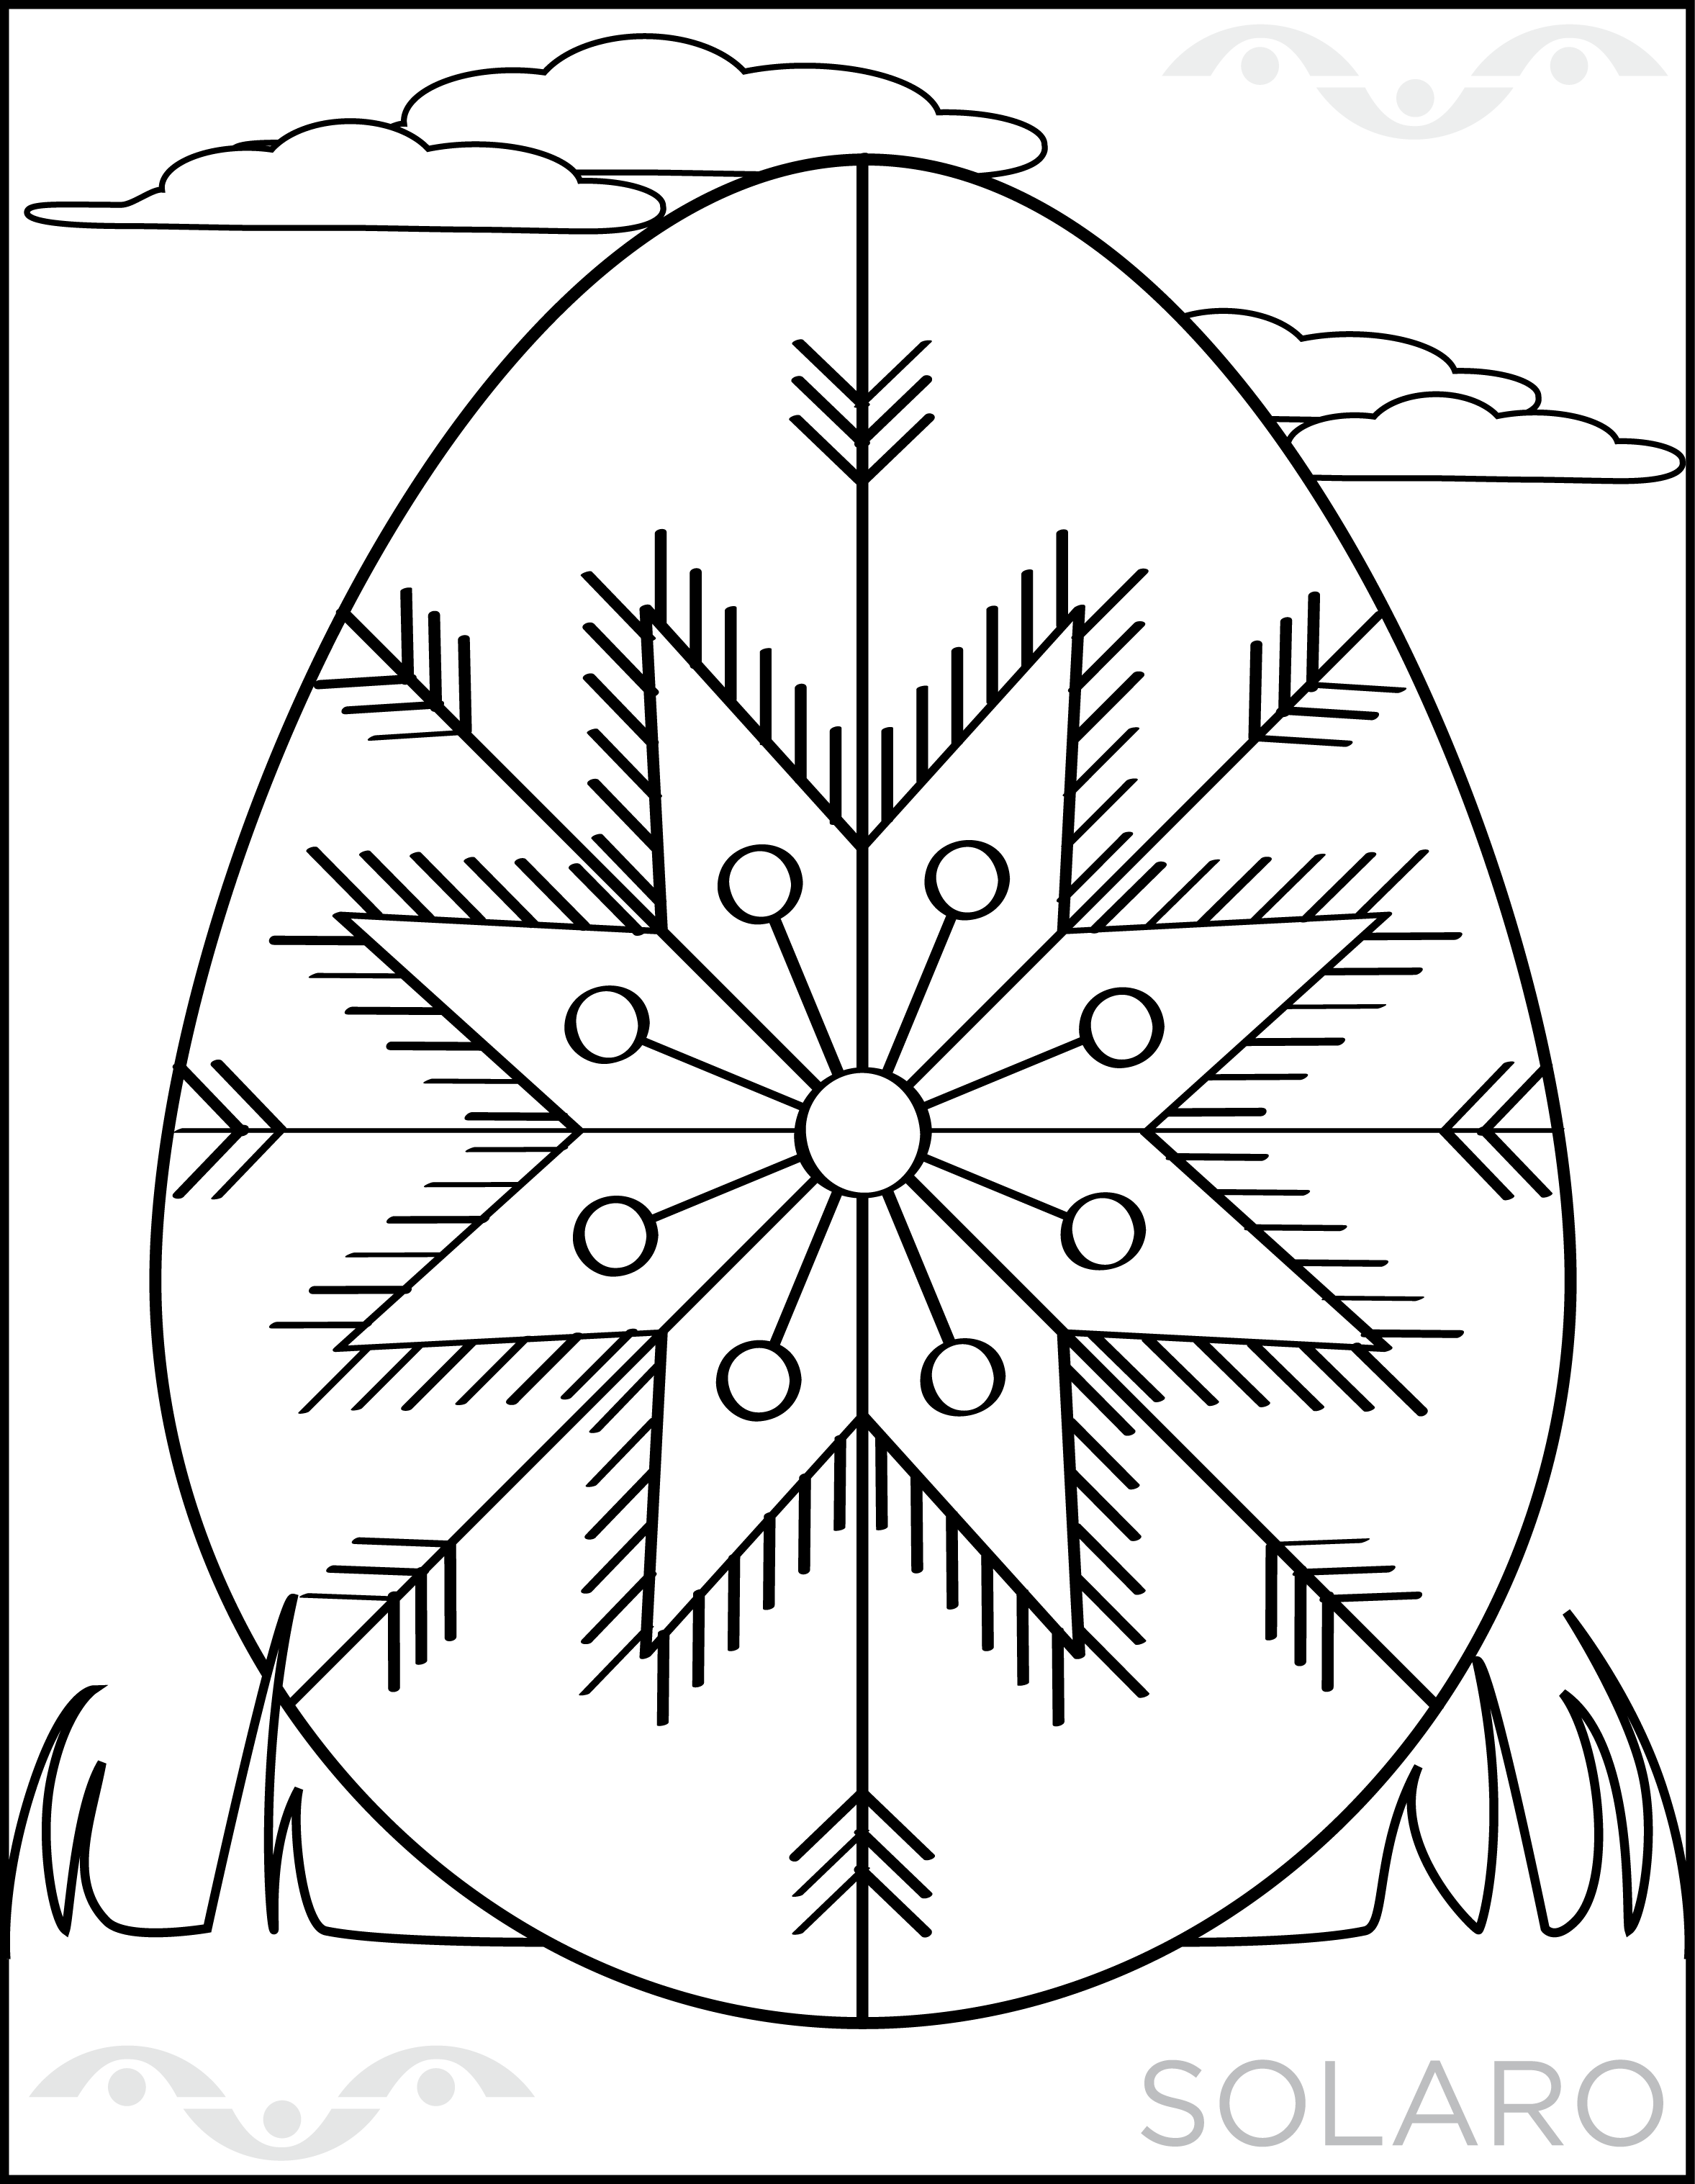 pysanky egg coloring pages colorful fabrics digitally printed by spoonflower egg coloring pages pysanky